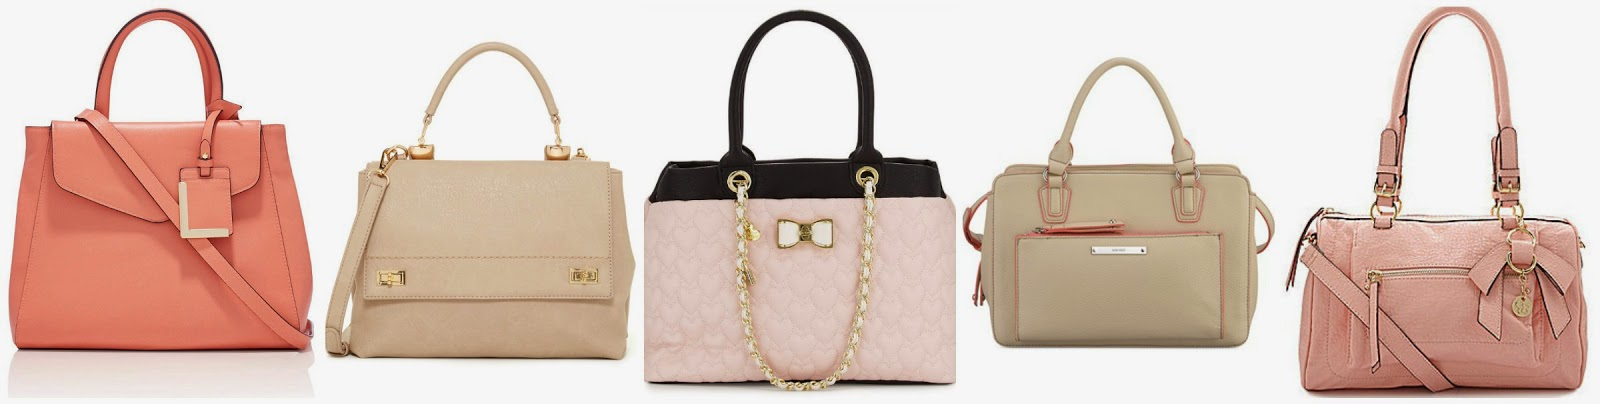 The Limited Flap Front Satchel Bag $34.97 (regular $69.95) Urban  Expressions Beatrice Handbag $38.97